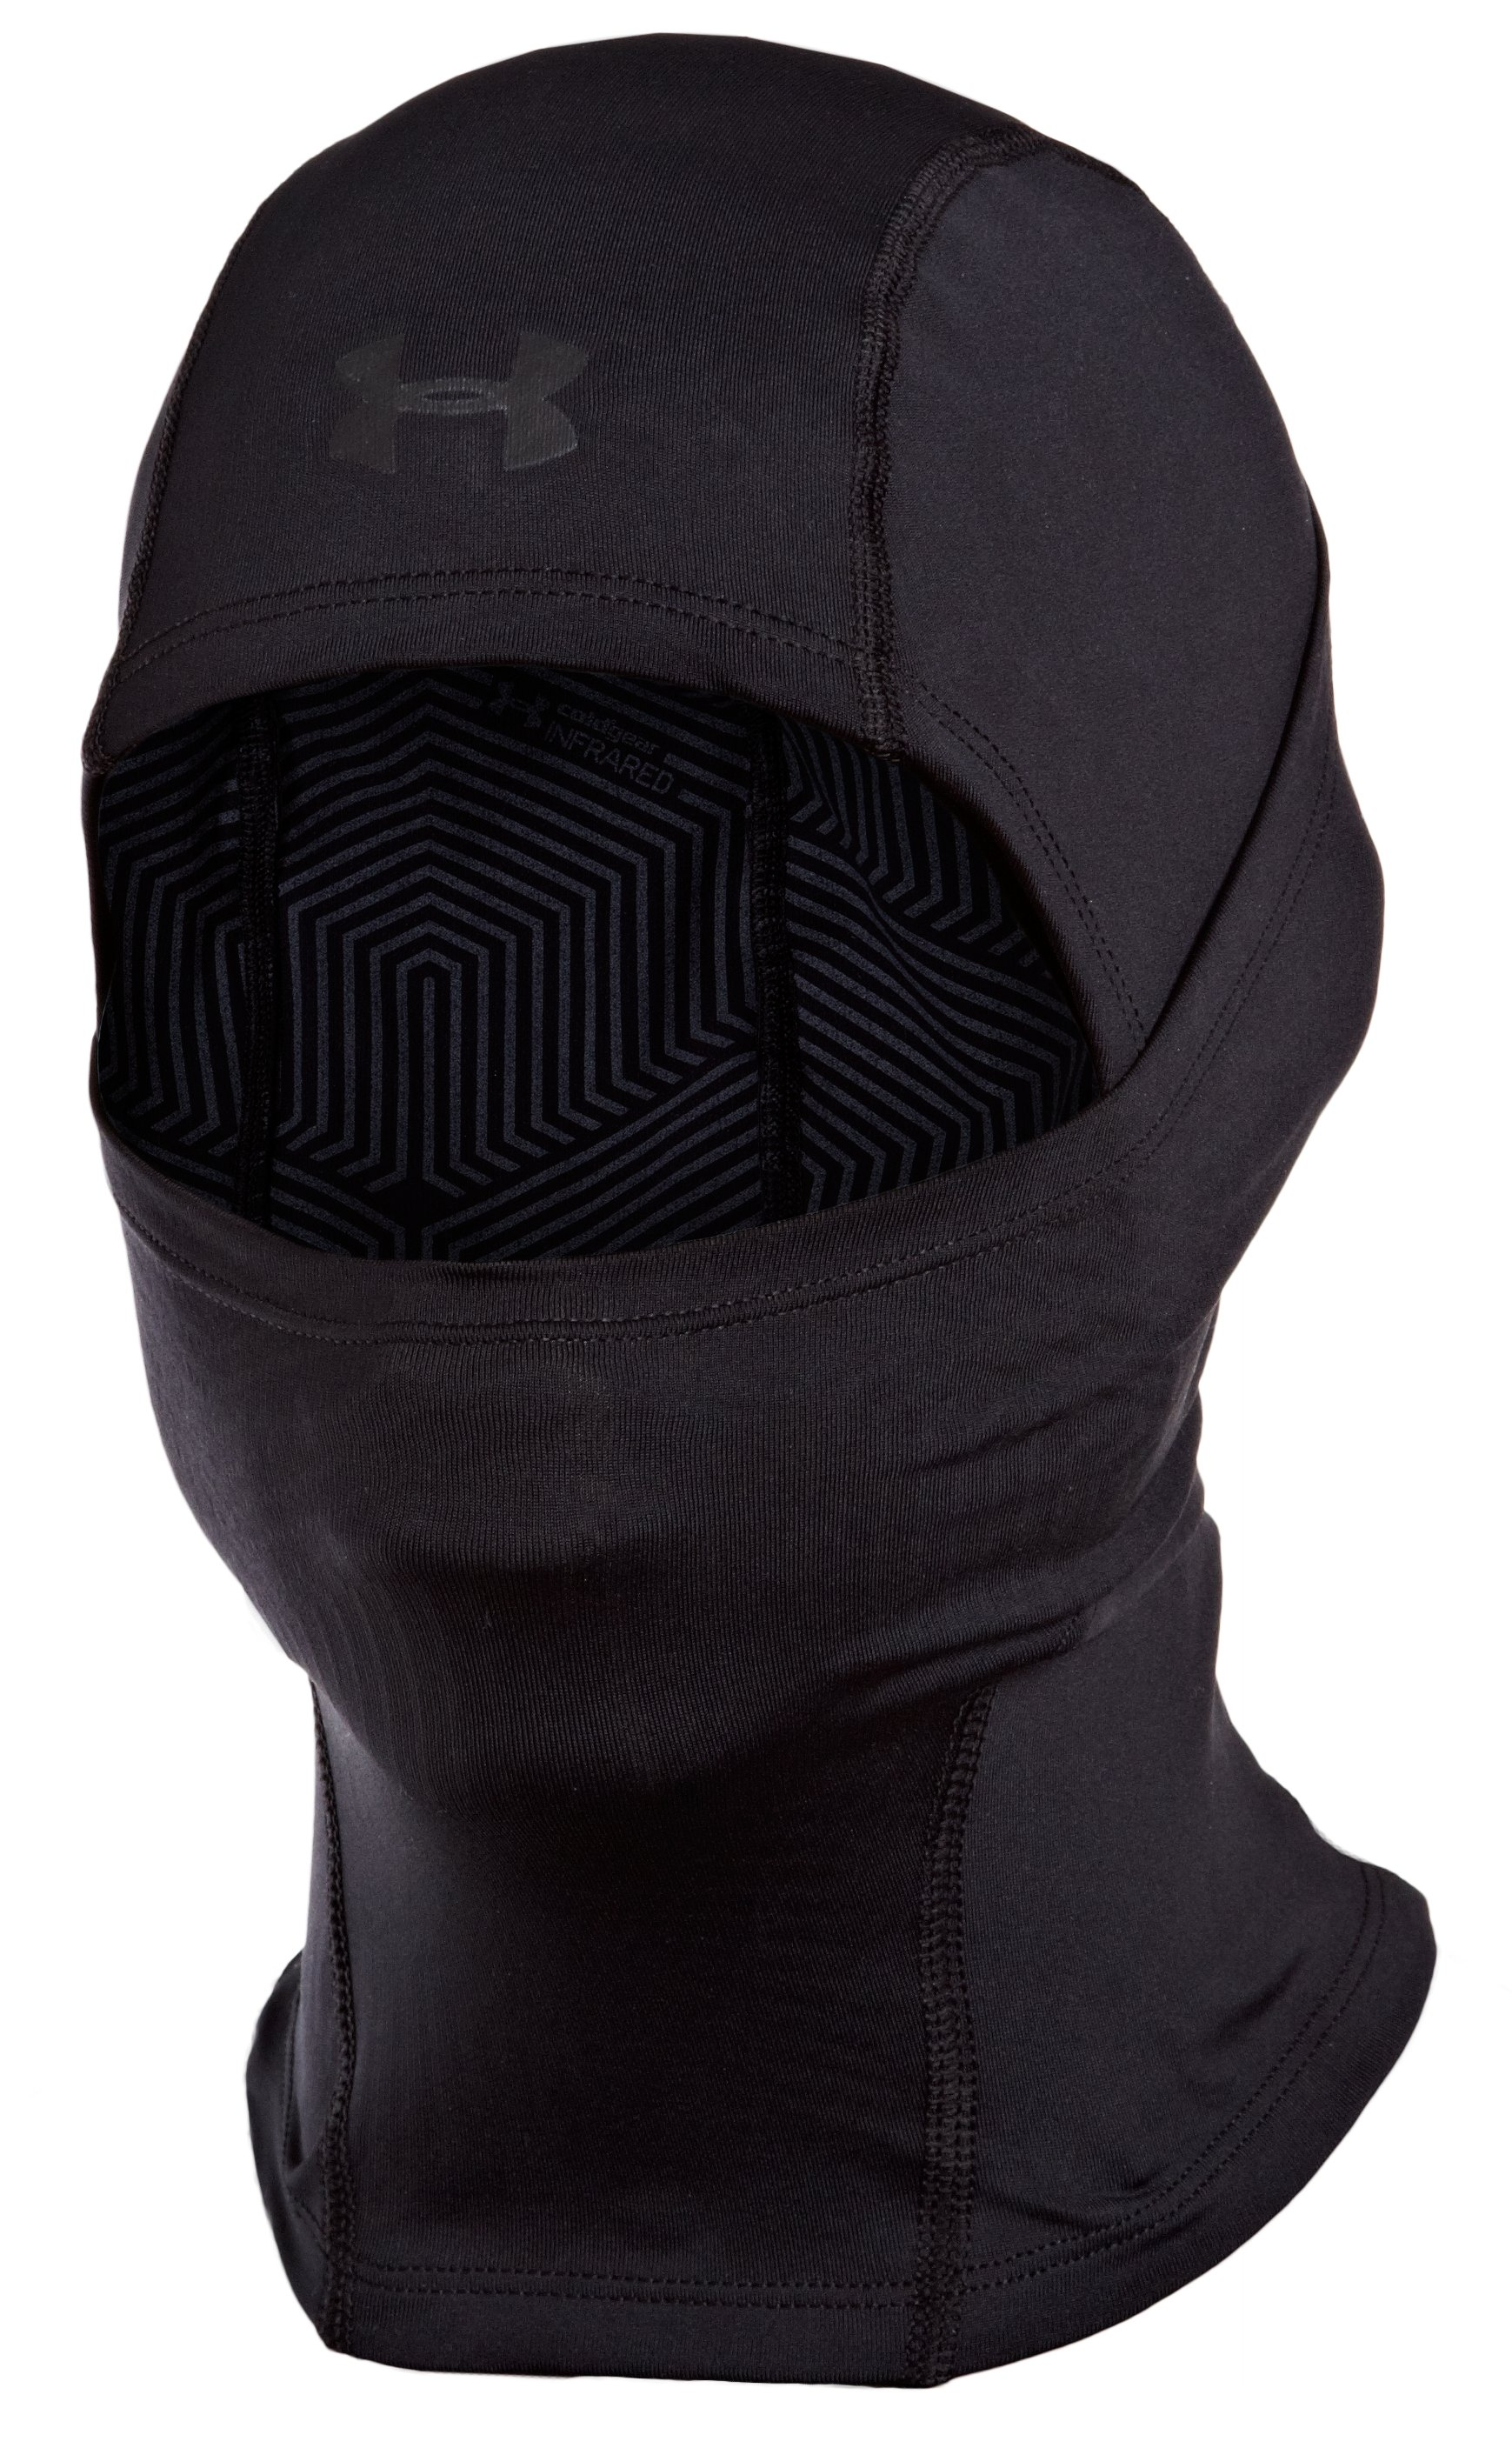 Men's ColdGear® Infrared Balaclava 2 Colors $15.00 - $17.99